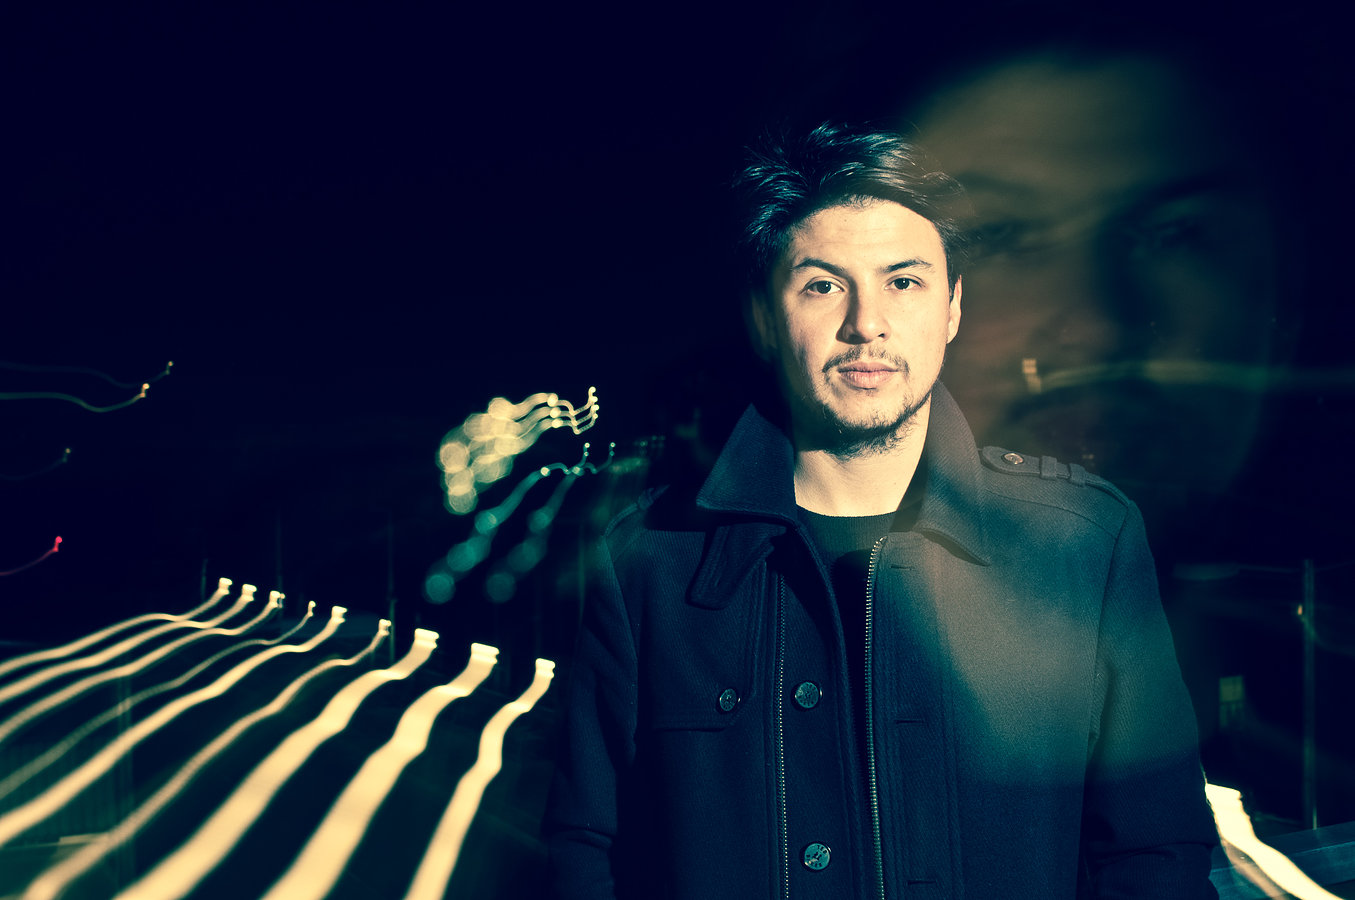 Jamie Woon returns with his second album, 'Making Time'.